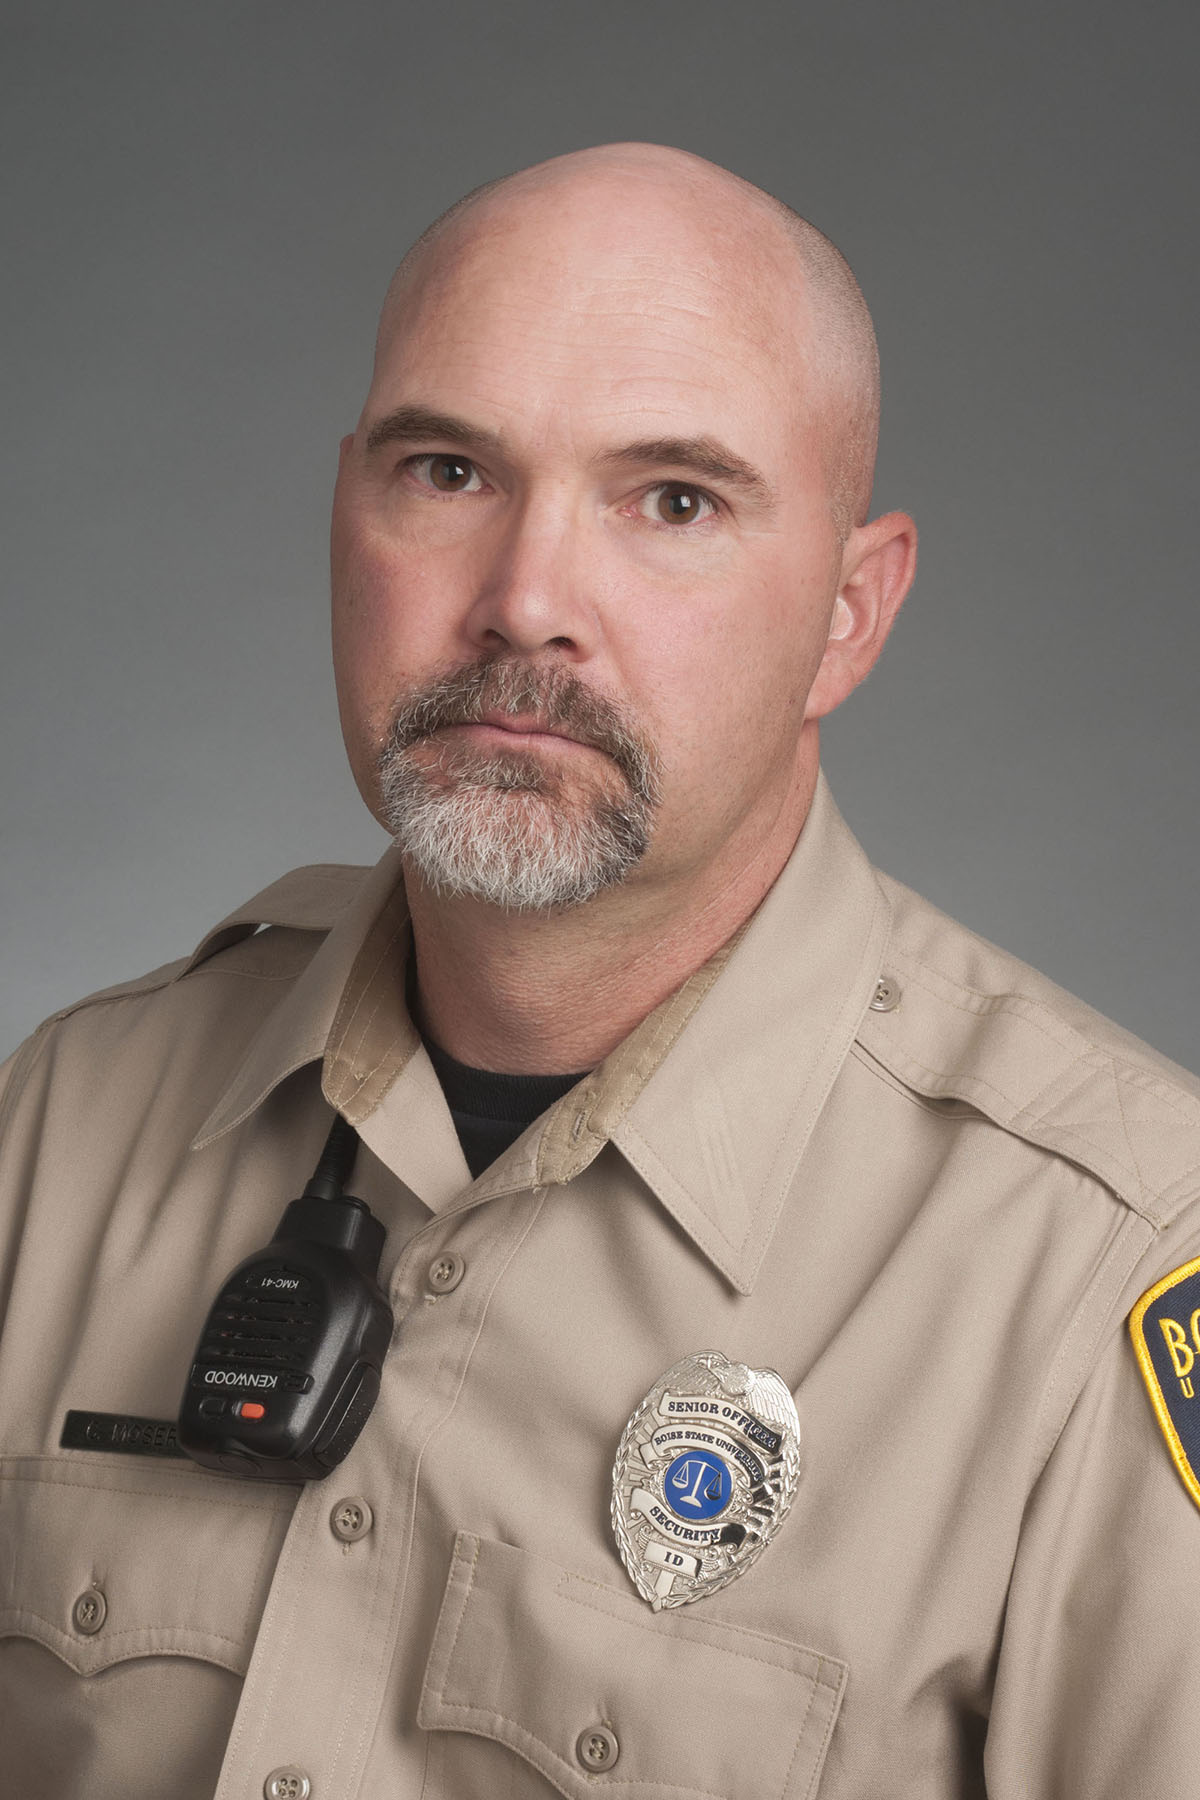 Chris Moser, Security, studio portrait